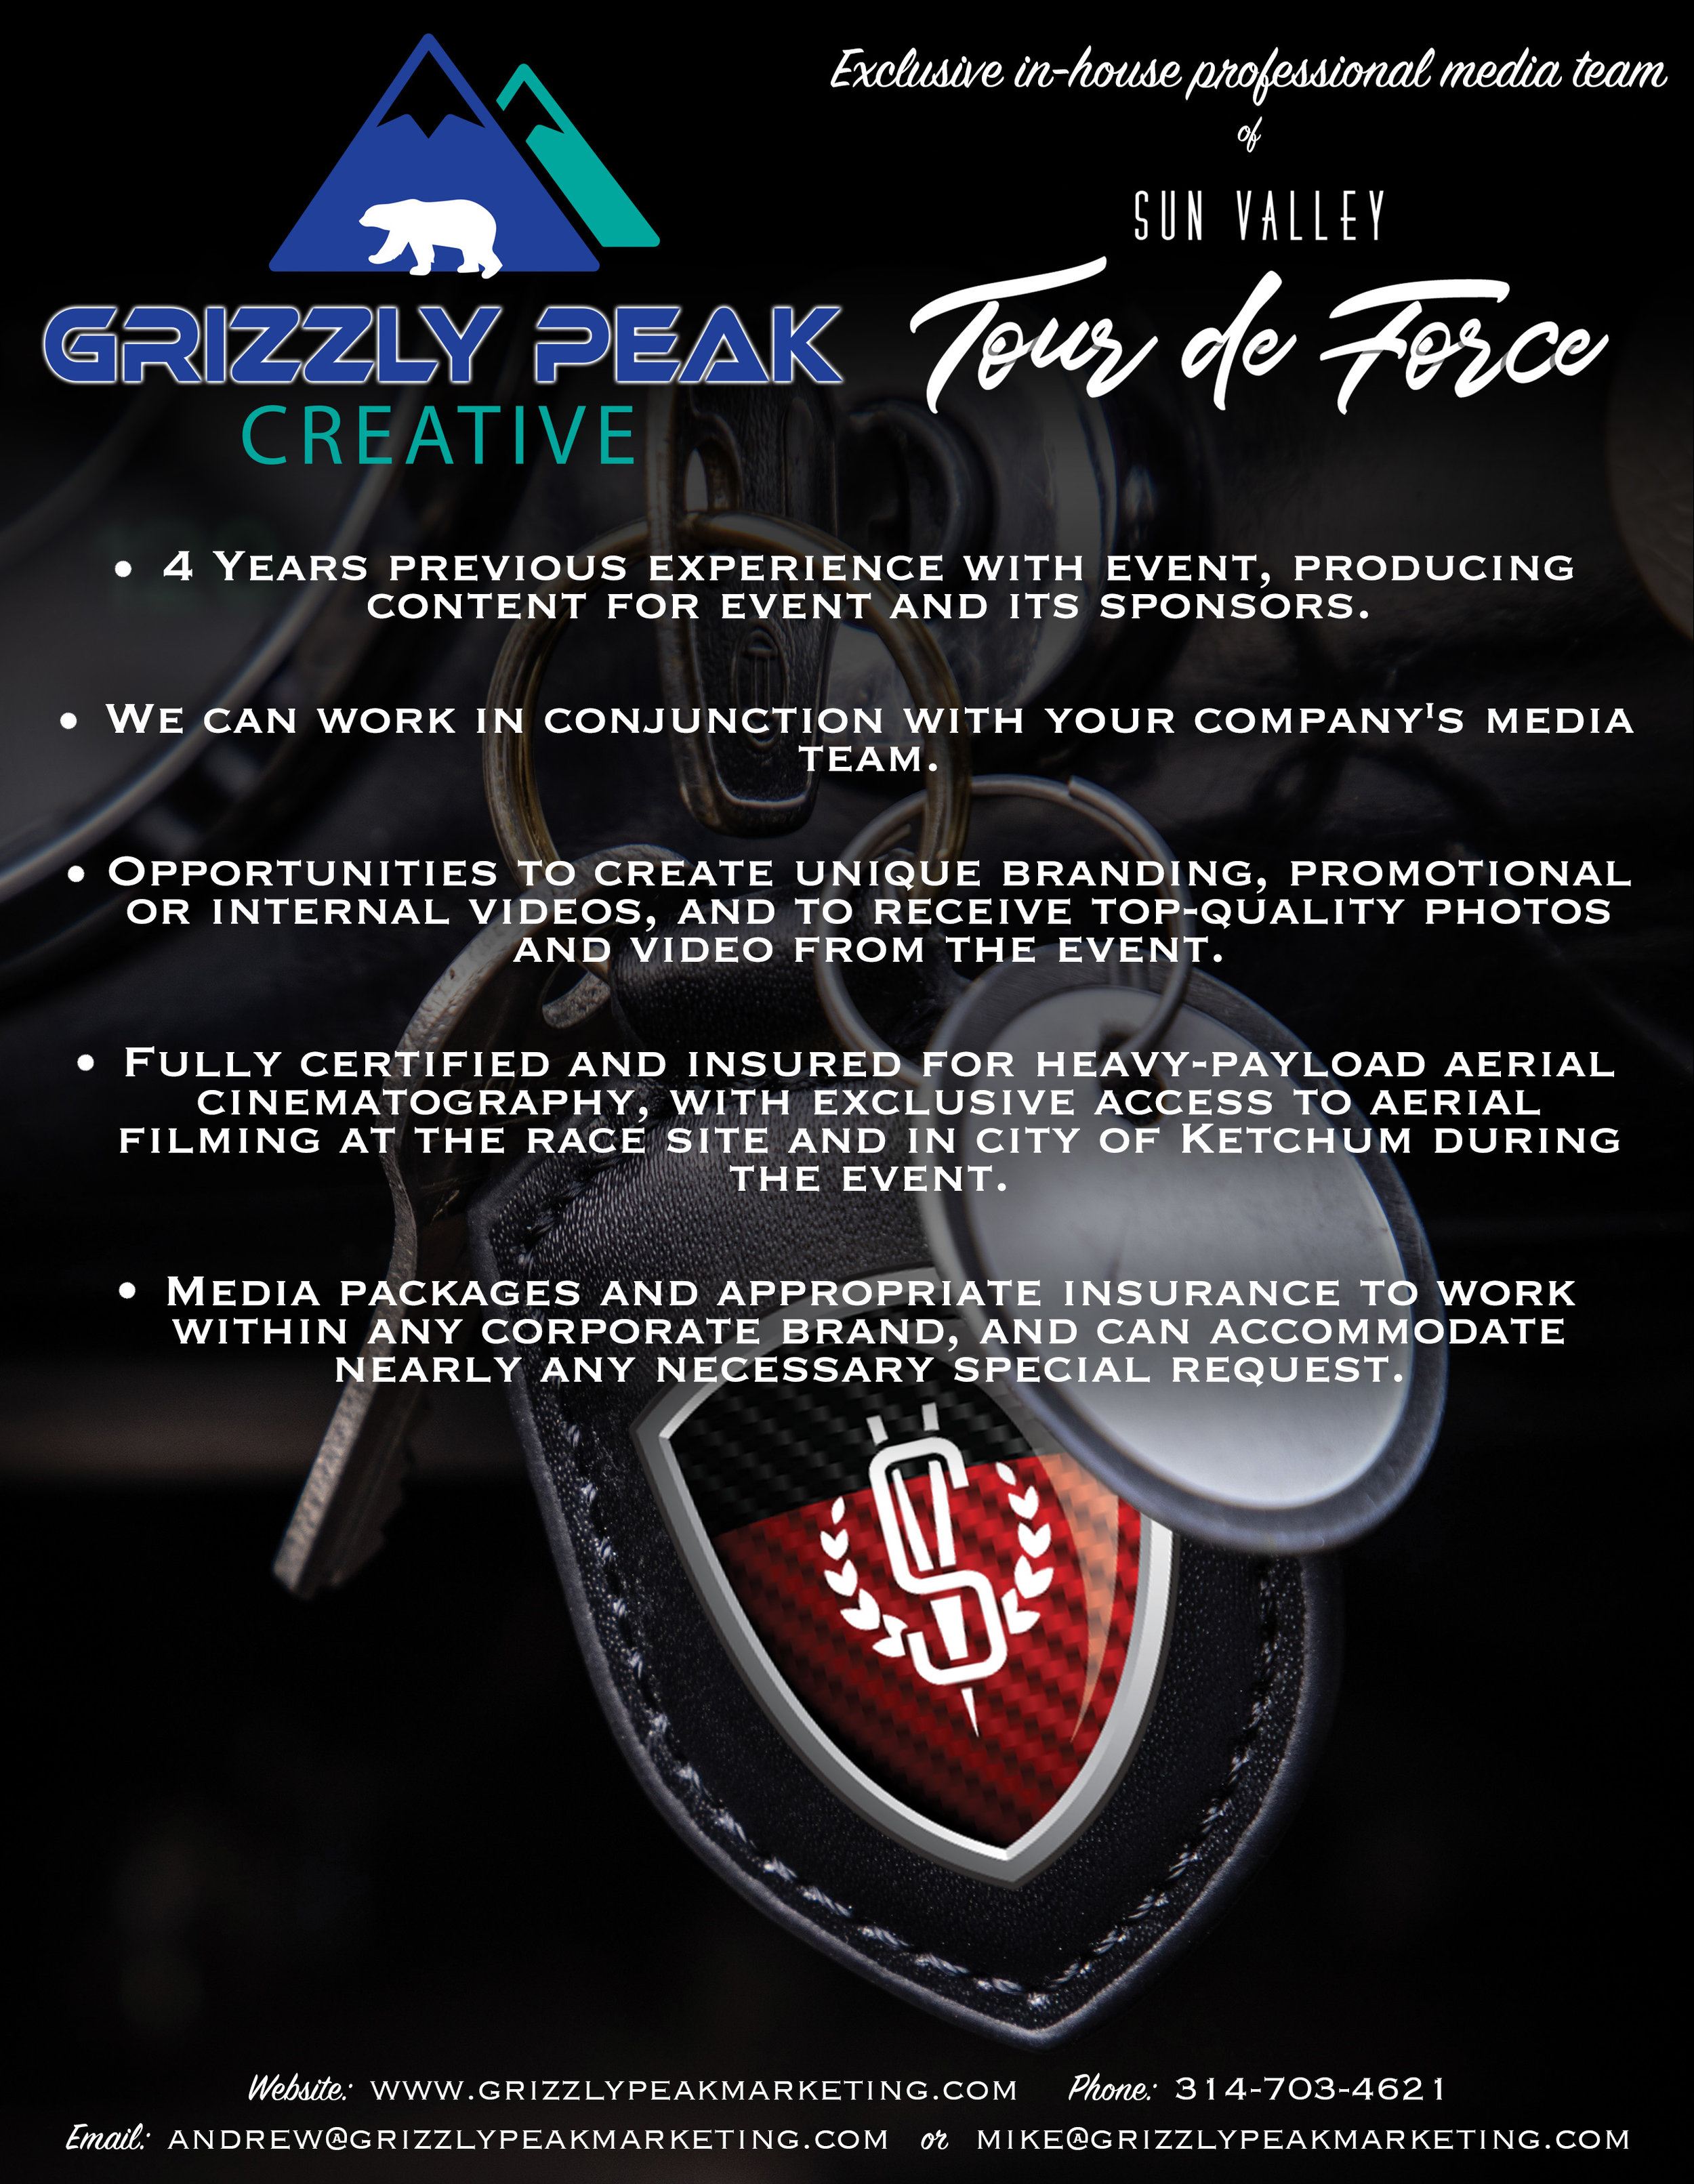 Grizzly Peak Creative Full-Page TDF Insert v3.jpg